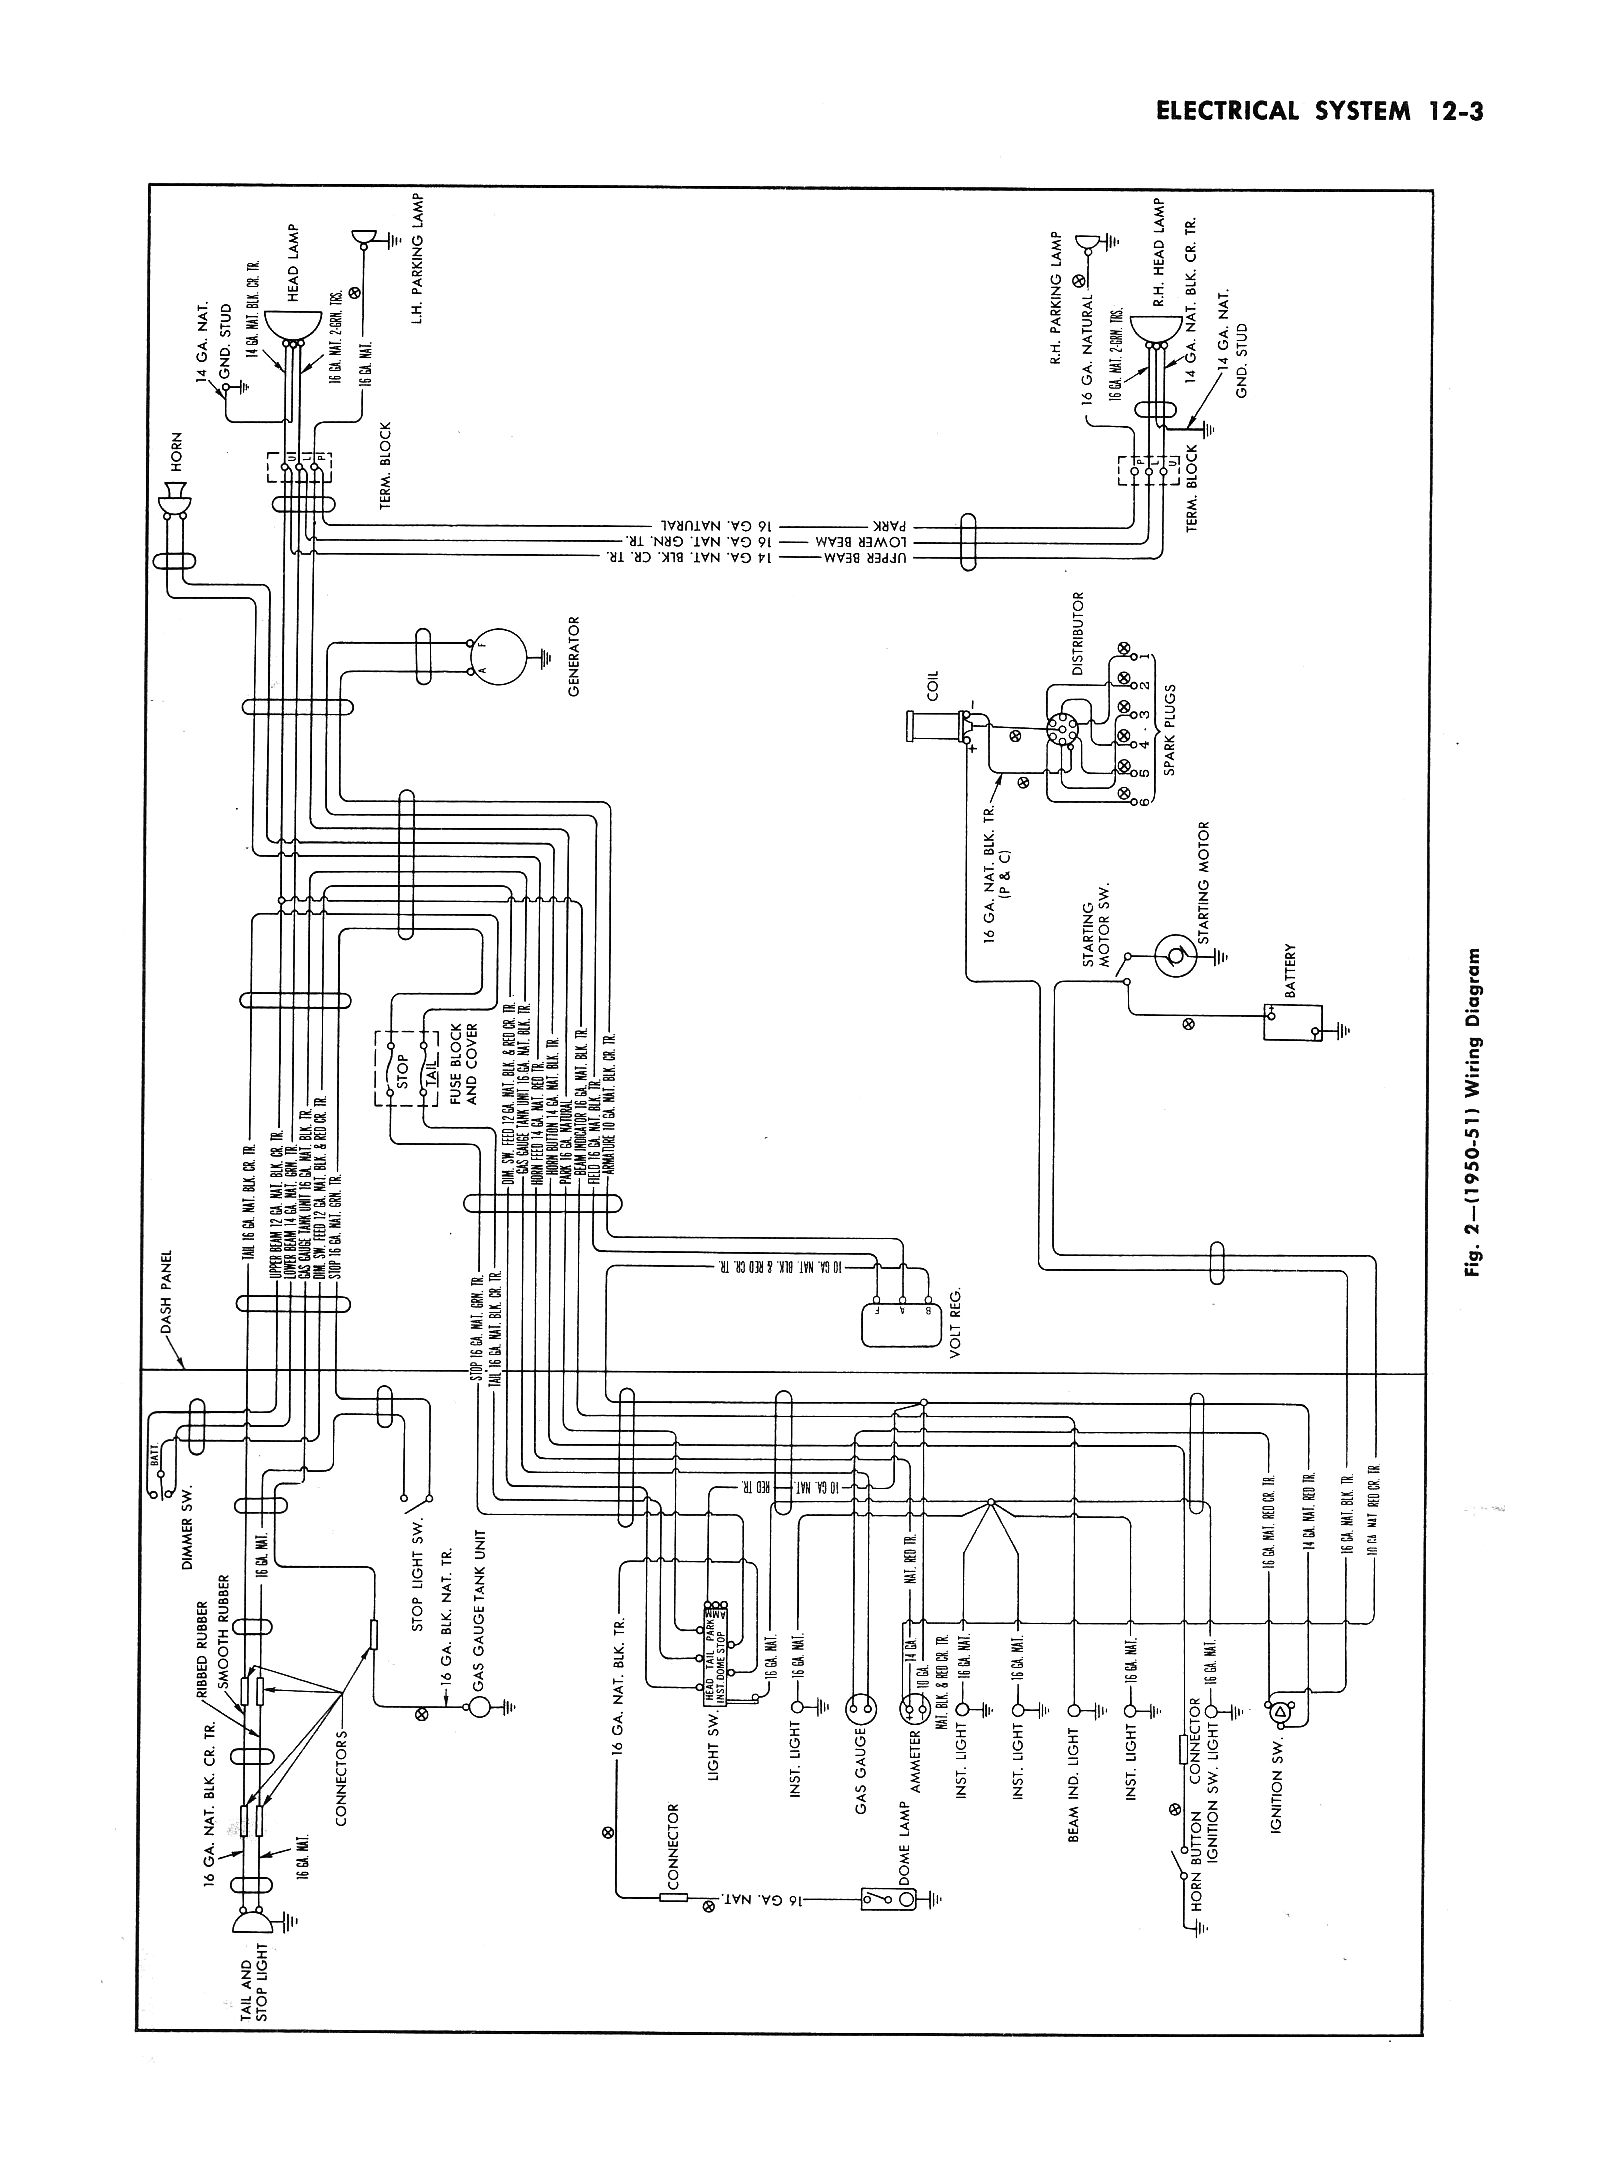 96 Chevy 1500 Heater Wiring Schematic Opinions About Diagram 93 240sx Free Download 1996 Pdf Just Data Rh Ag Skiphire Co Uk Relay